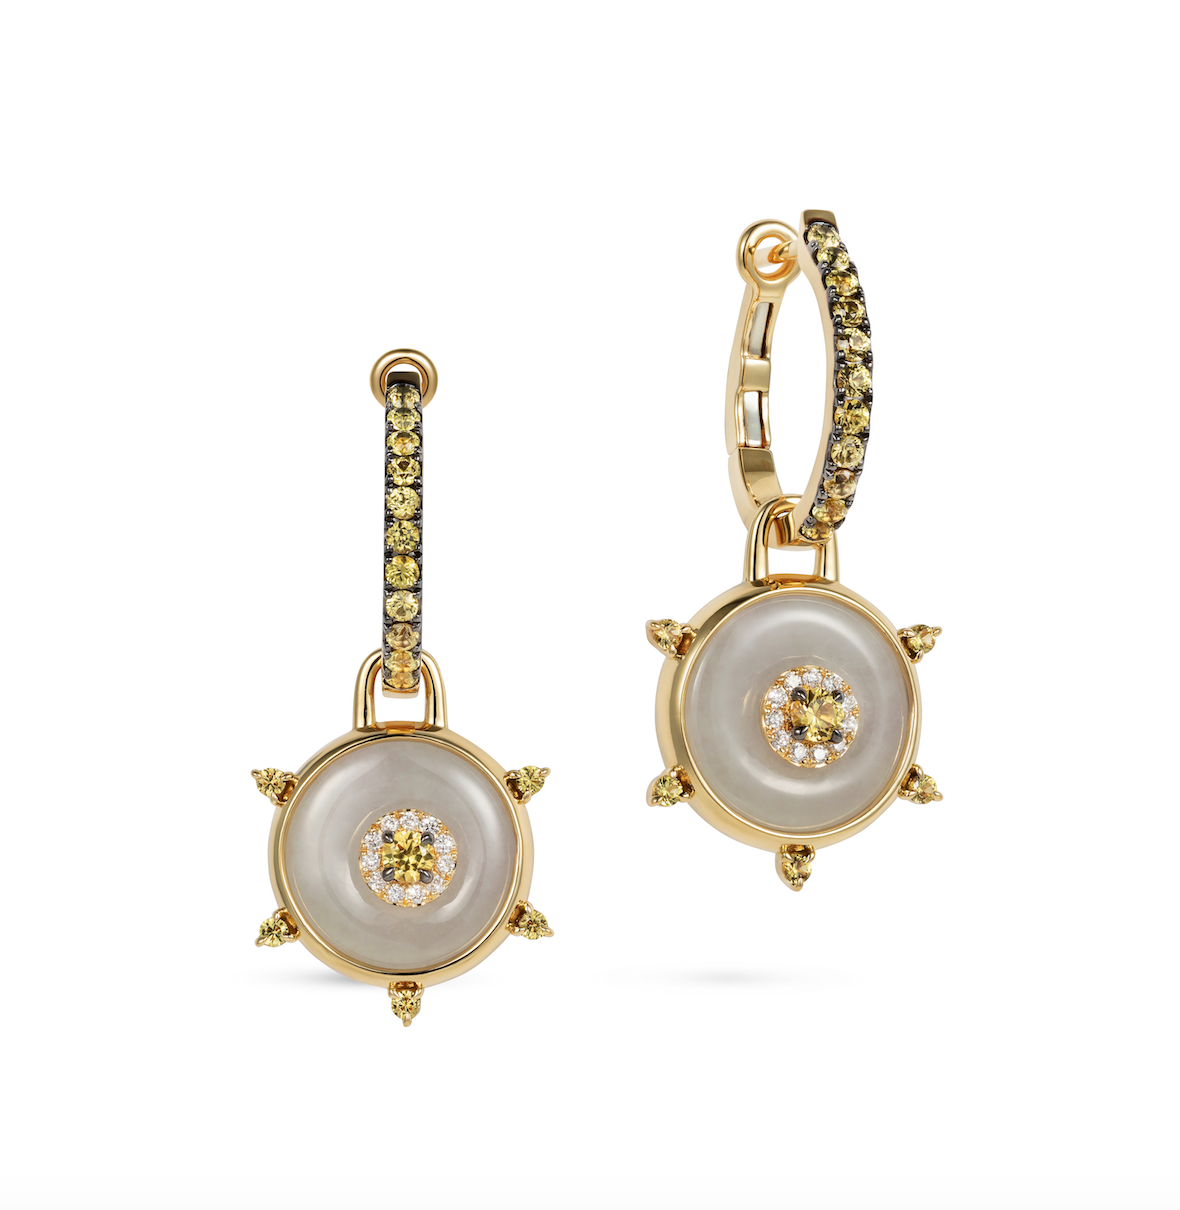 Celeste Yellow Sapphire and Jade Huggie Earrings by Nadine Aysoy on curated-crowd.com